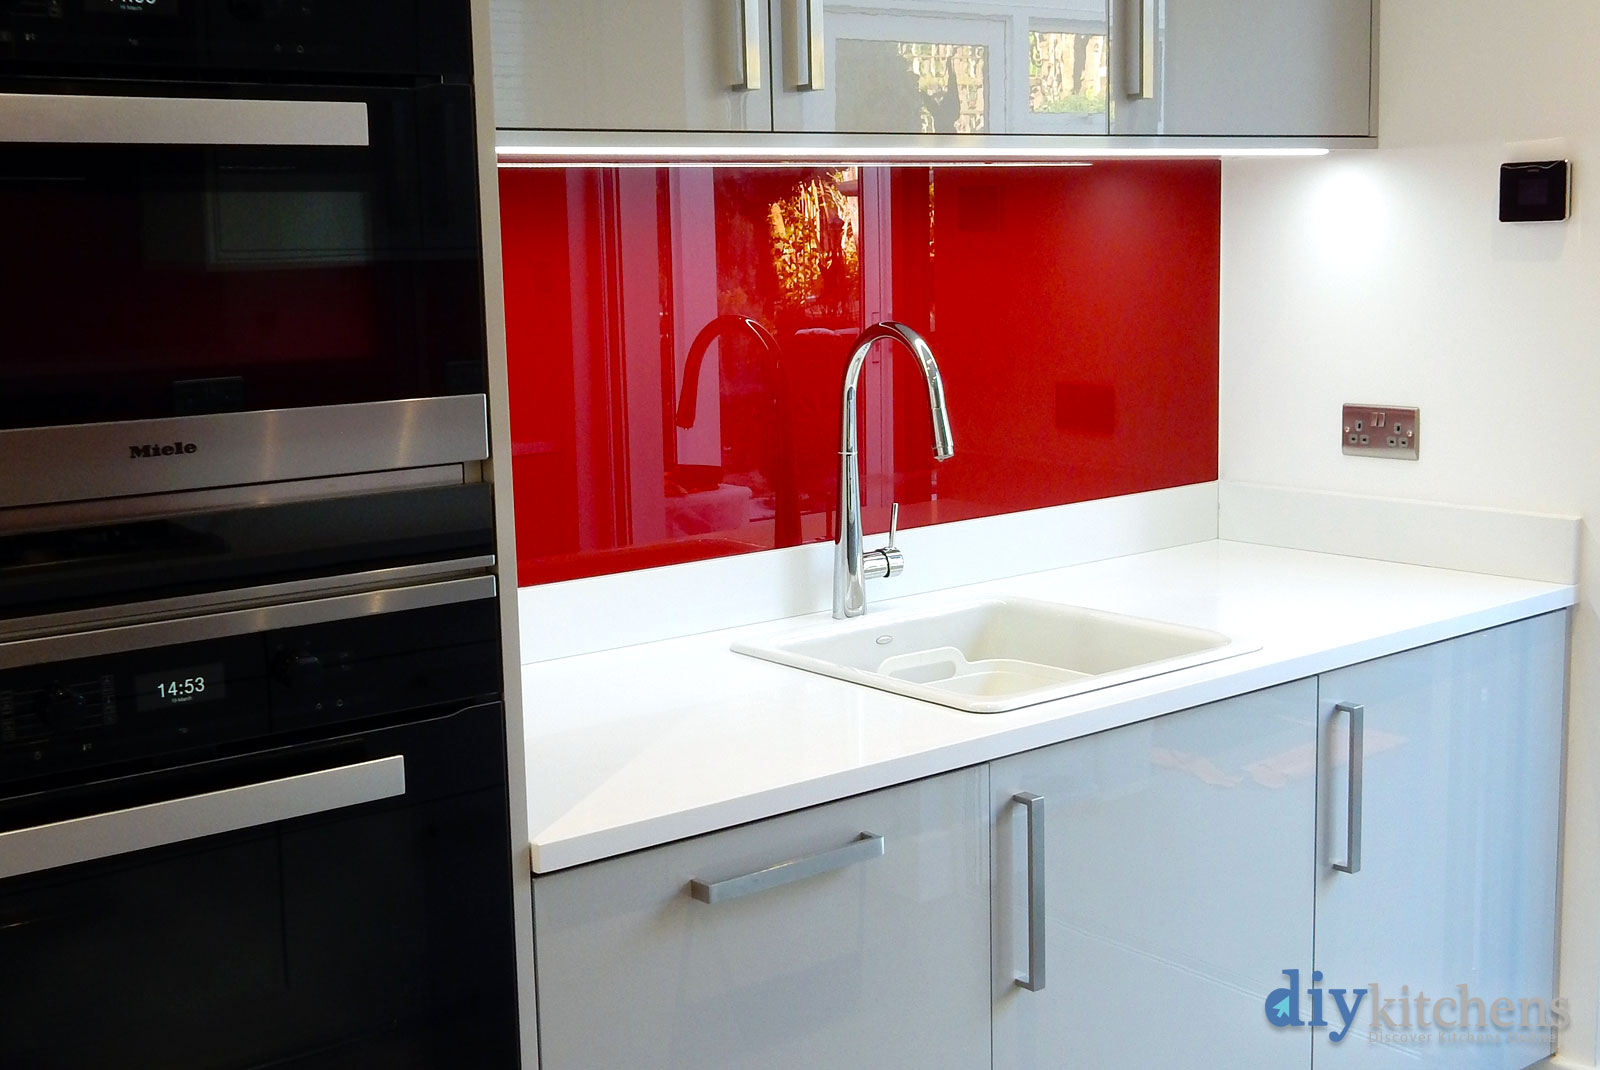 Ewart from london photos attached of this installation for Diy kitchens com reviews